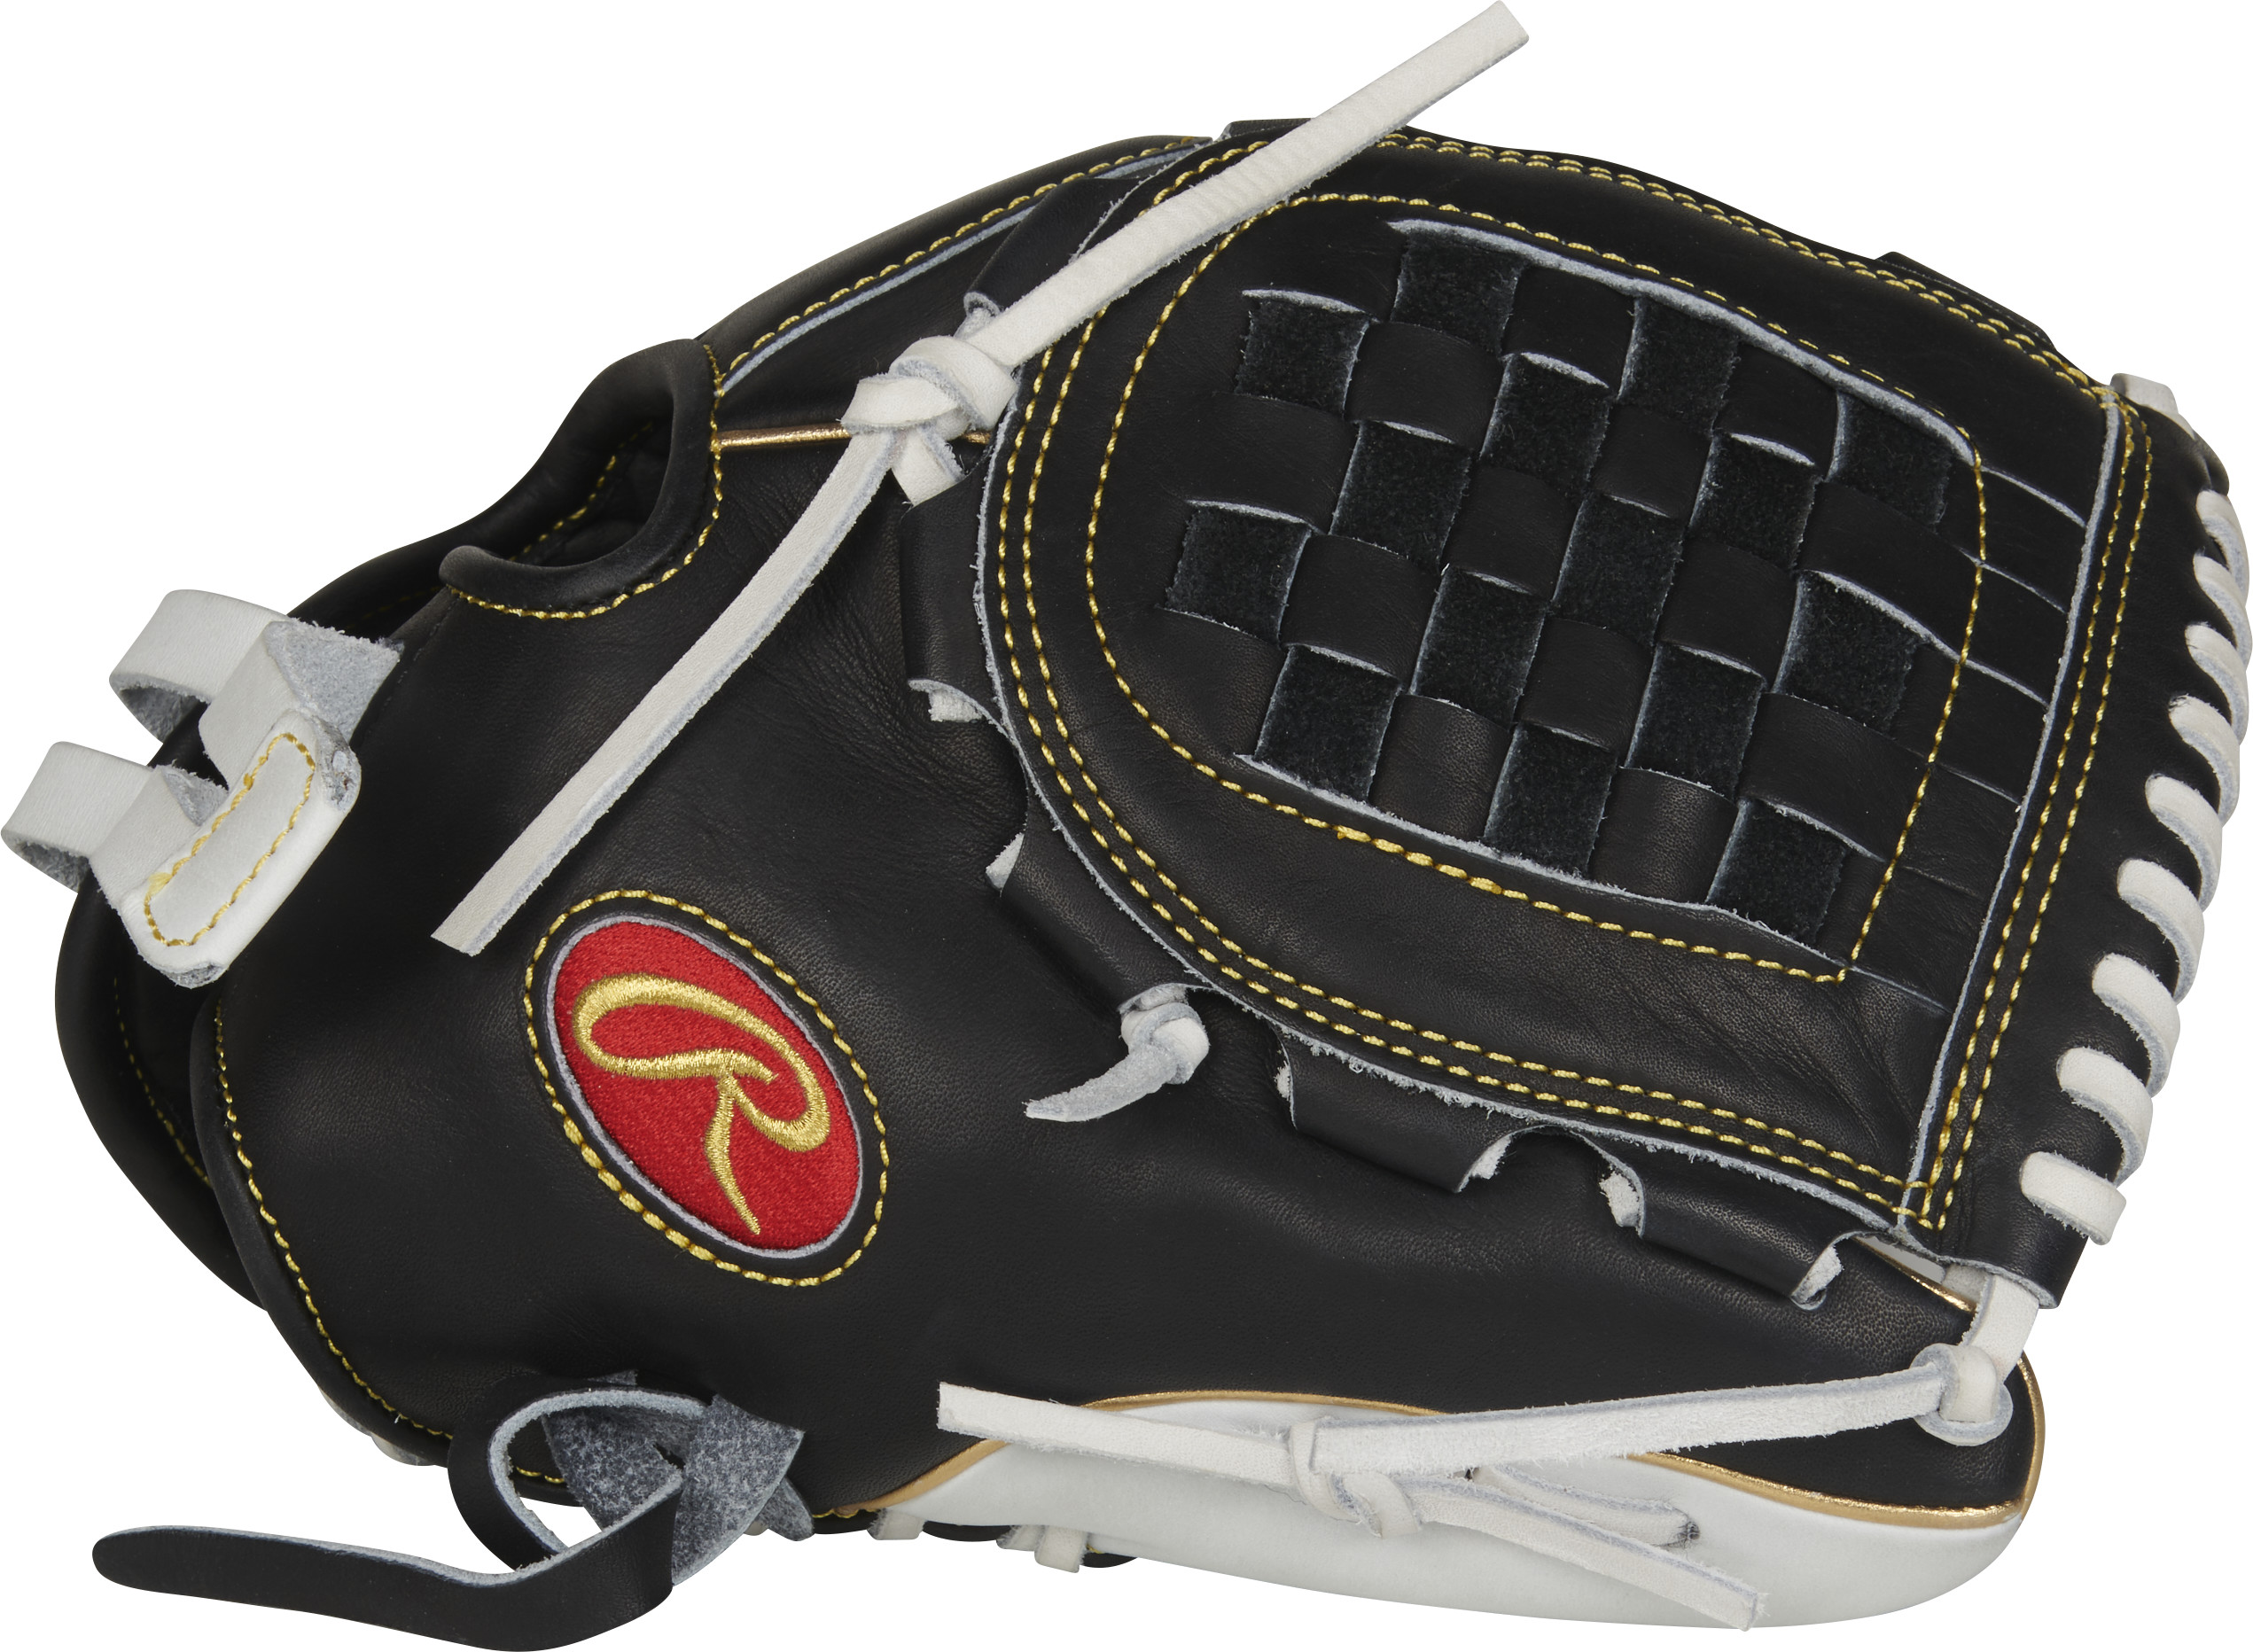 http://www.bestbatdeals.com/images/gloves/rawlings/PRO120SB-3BW-3.jpg